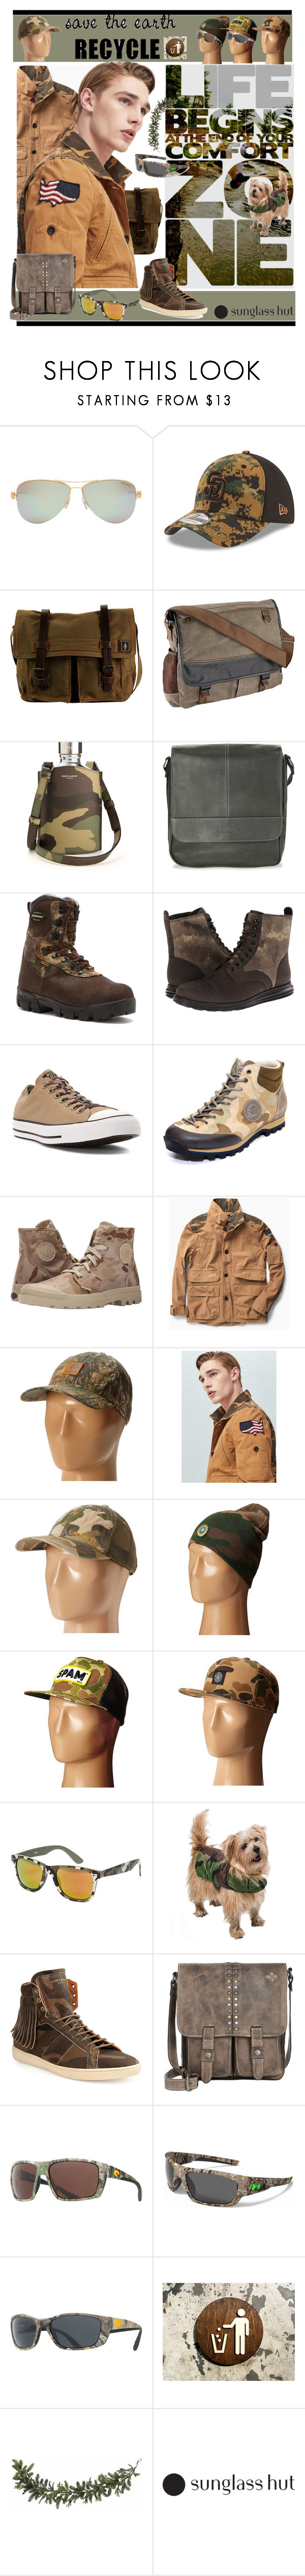 """Go Camo! Recycle!"" by yours-styling-best-friend ❤ liked on Polyvore featuring Tiffany & Co., New Era, DamnDog, Yves Saint Laurent, Kenneth Cole Reaction, LaCrosse, Cole Haan, Converse, Napapijri and Palladium"